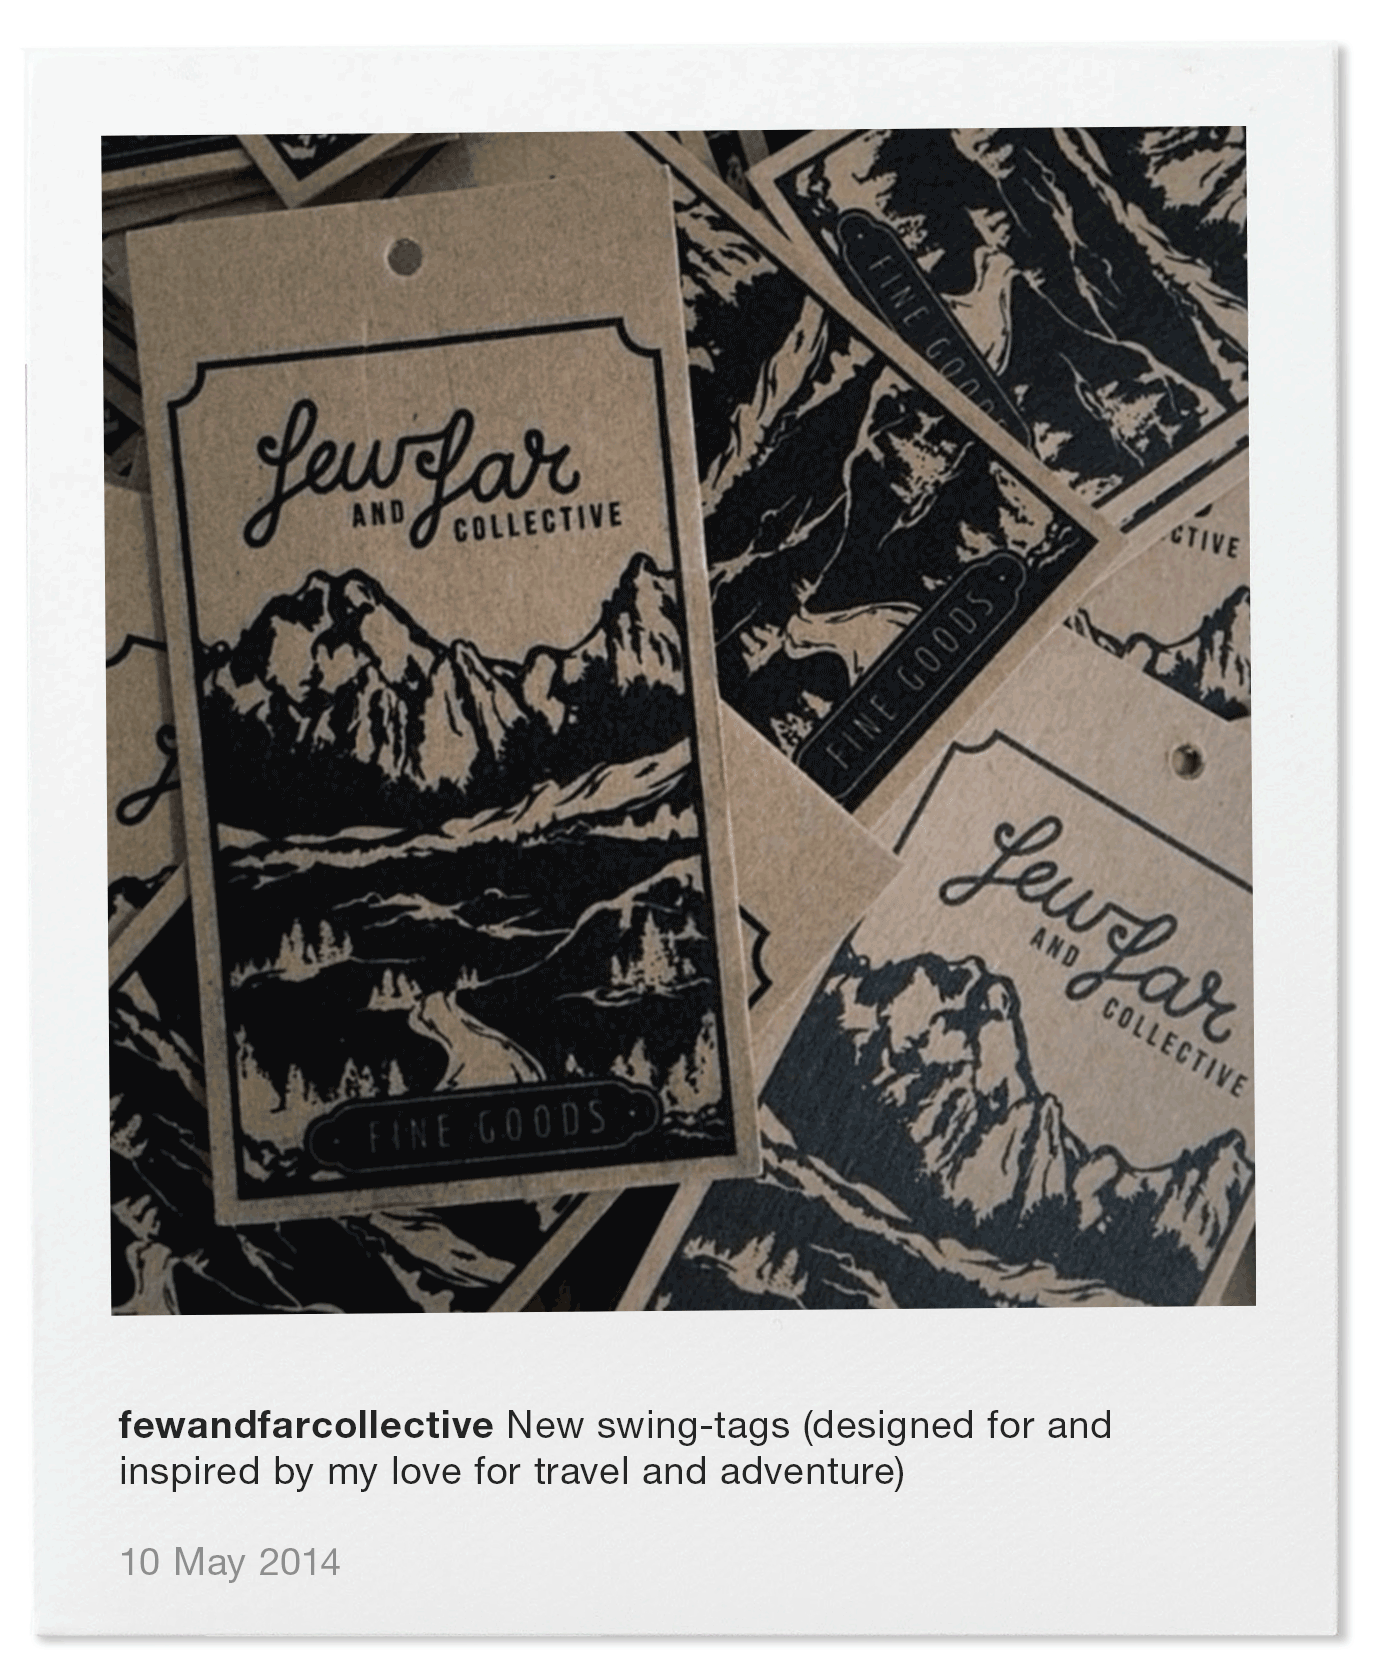 New swing-tags (designed for and inspired by my love for travel and adventure)